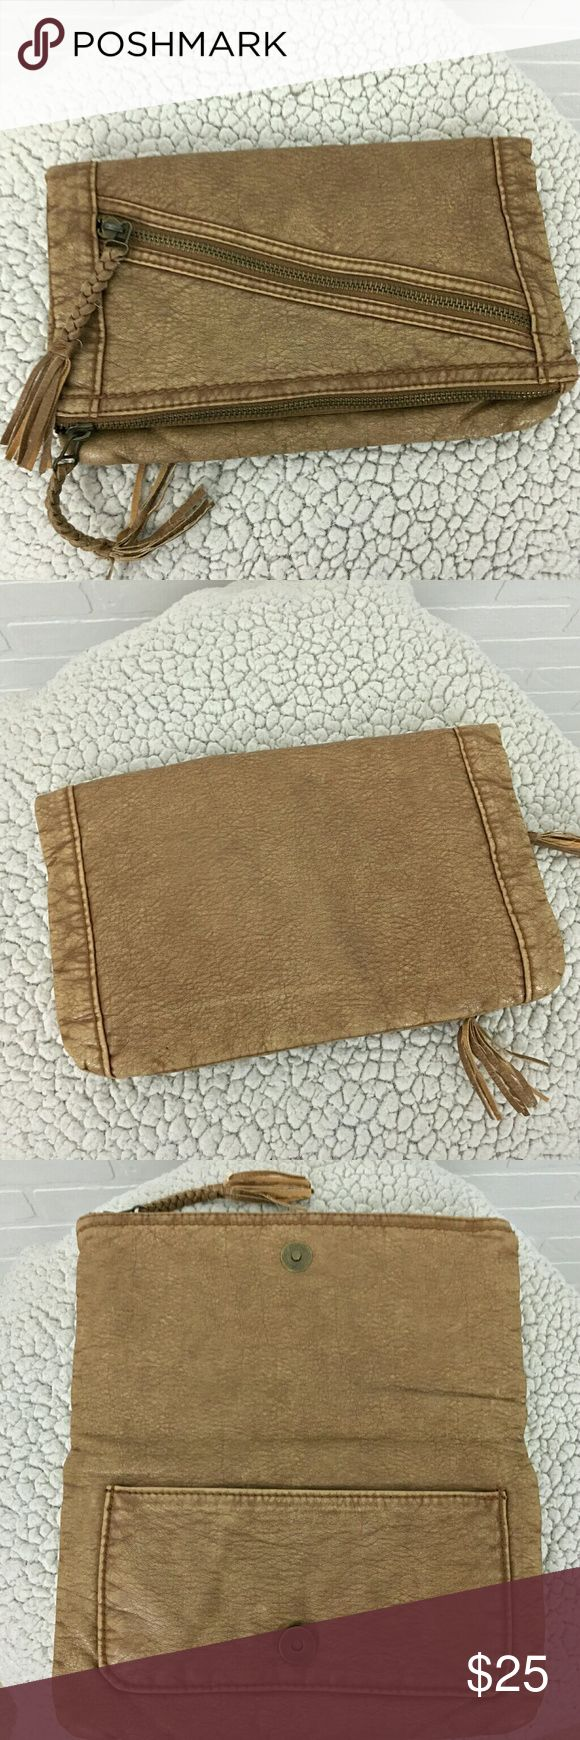 CONVERSE Brown Leather Envelope Clutch Purse Bag Brand             : Converse Style              : Clutch Color              : Brown Converse Bags